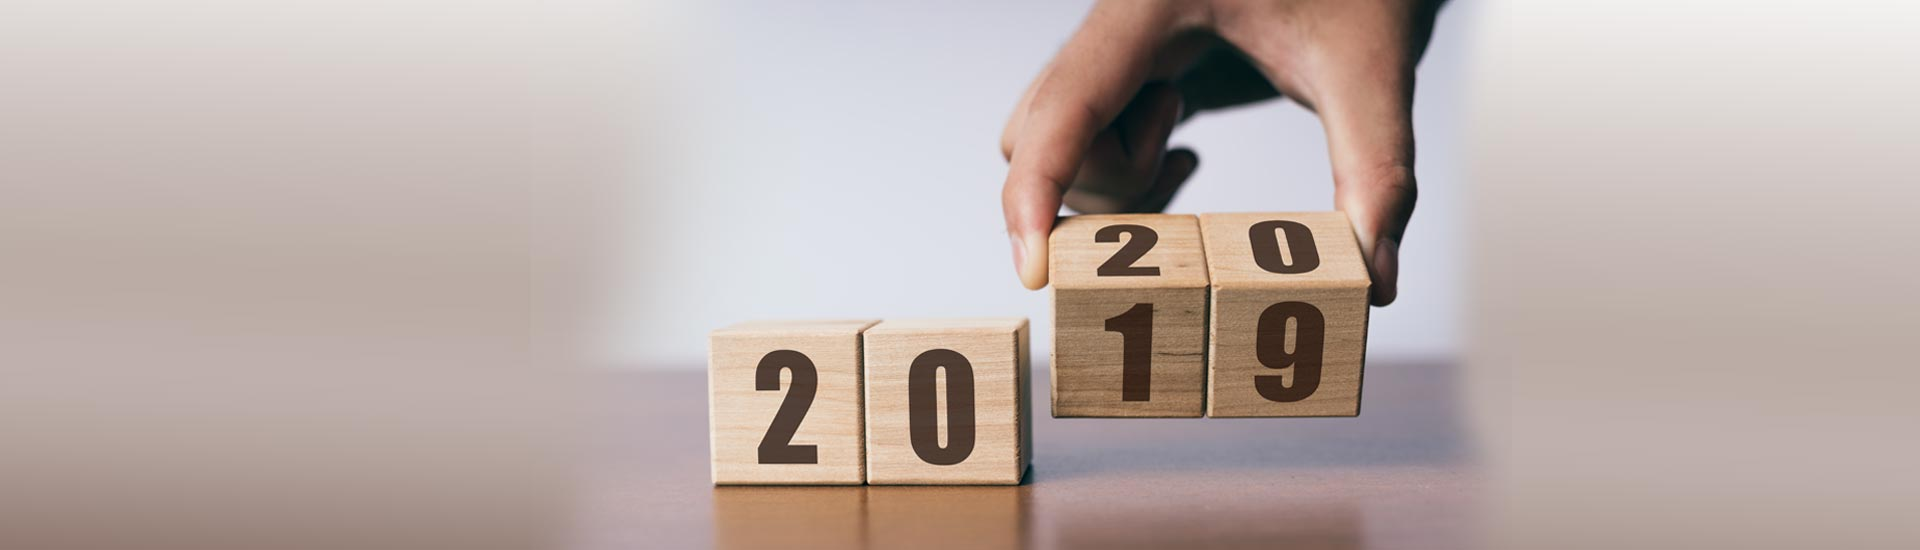 5 New Year Resolutions you can actually accomplish this year